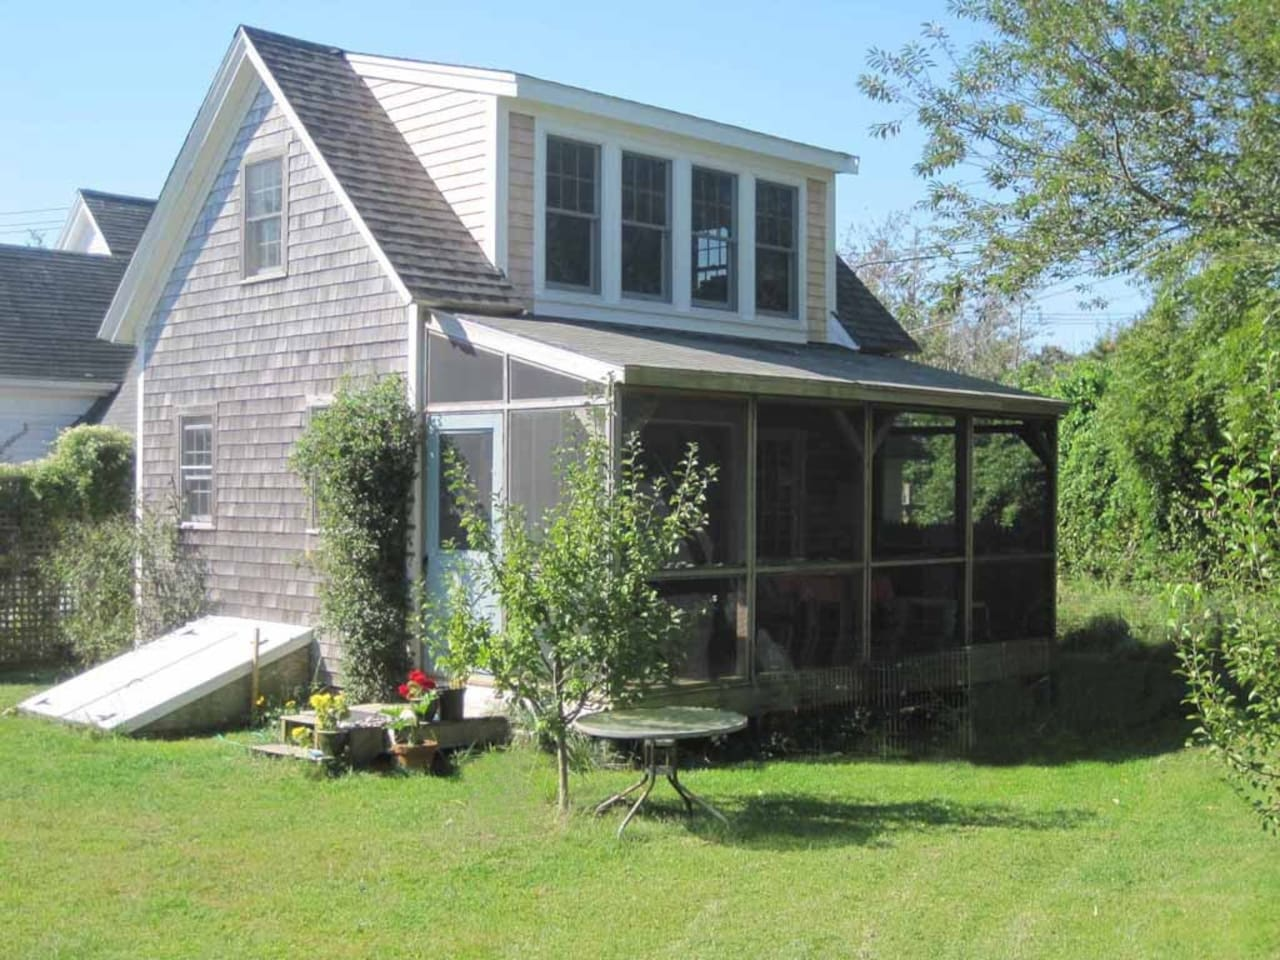 View of the  cottage from back yard showing screen porch and upstairs bedroom with dormer windows.